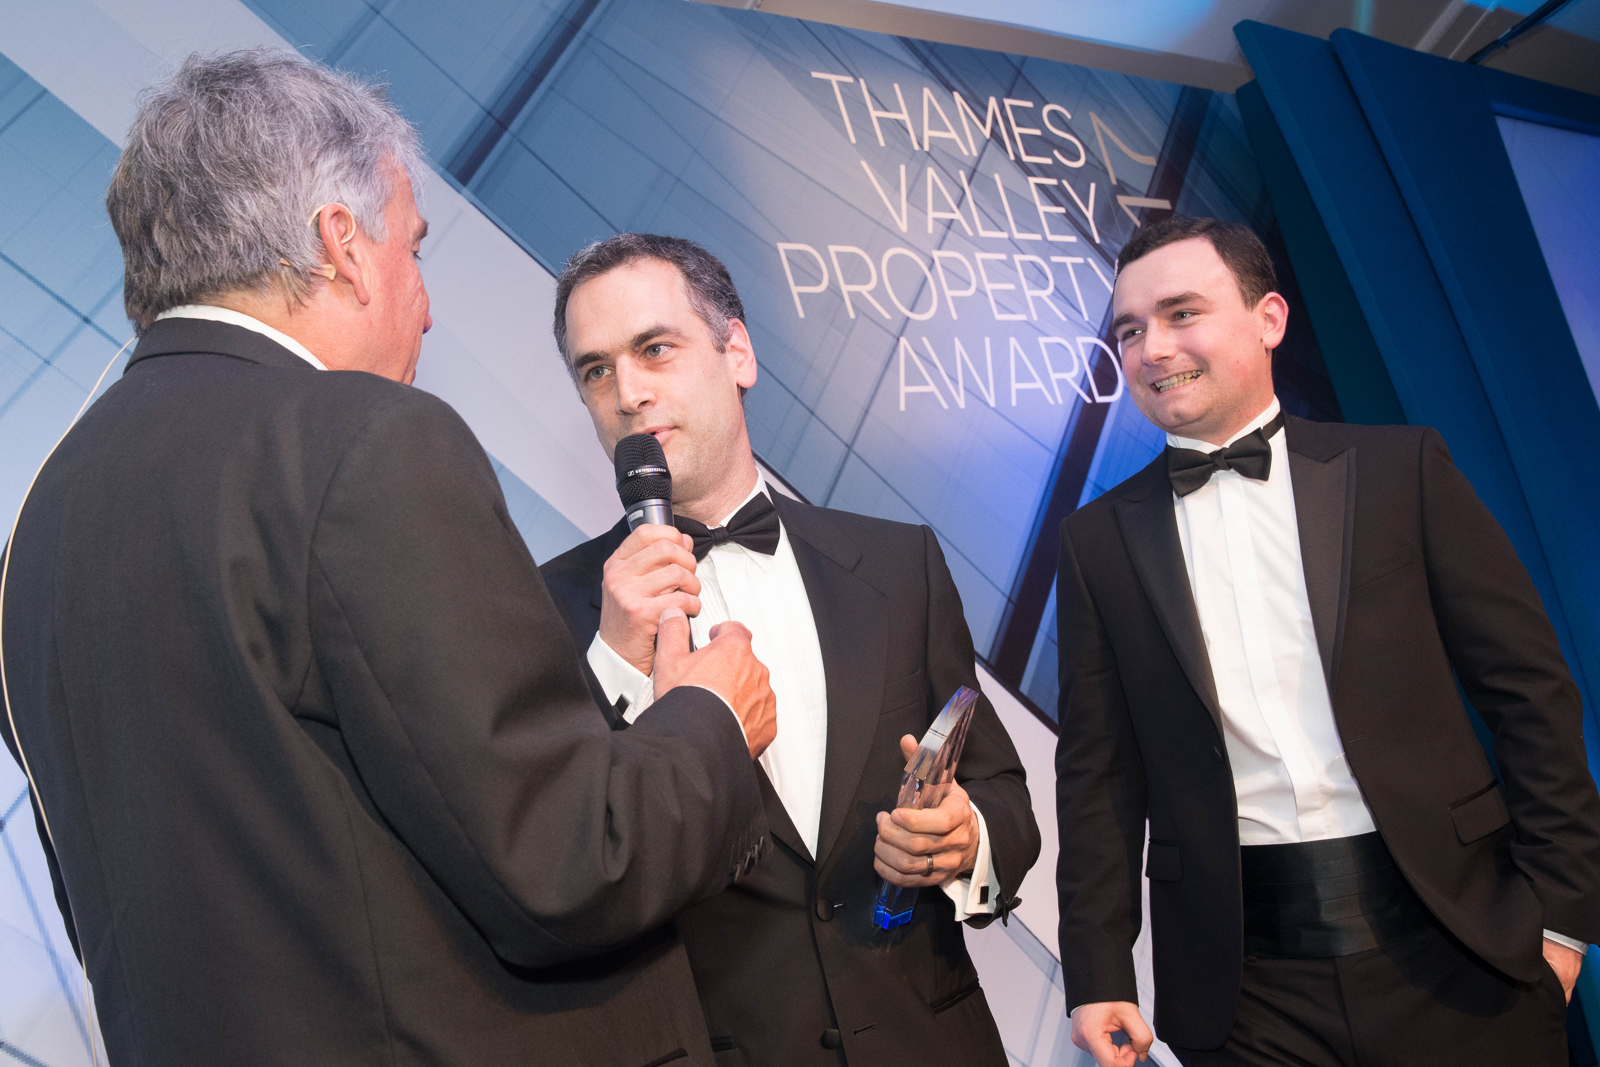 Thames Valley Property Awards 2017